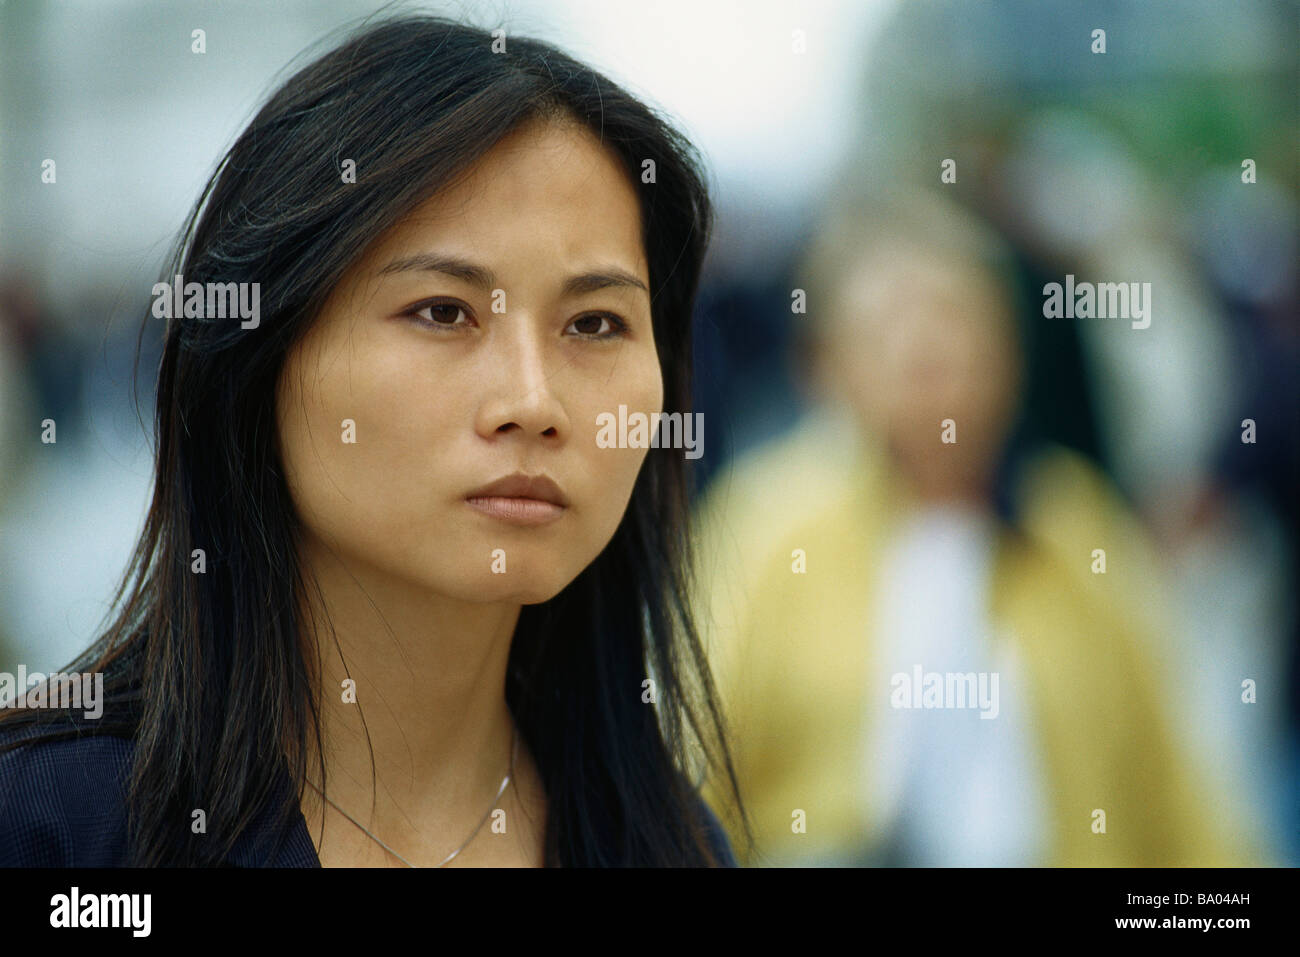 Woman looking away with brow furrowed - Stock Image